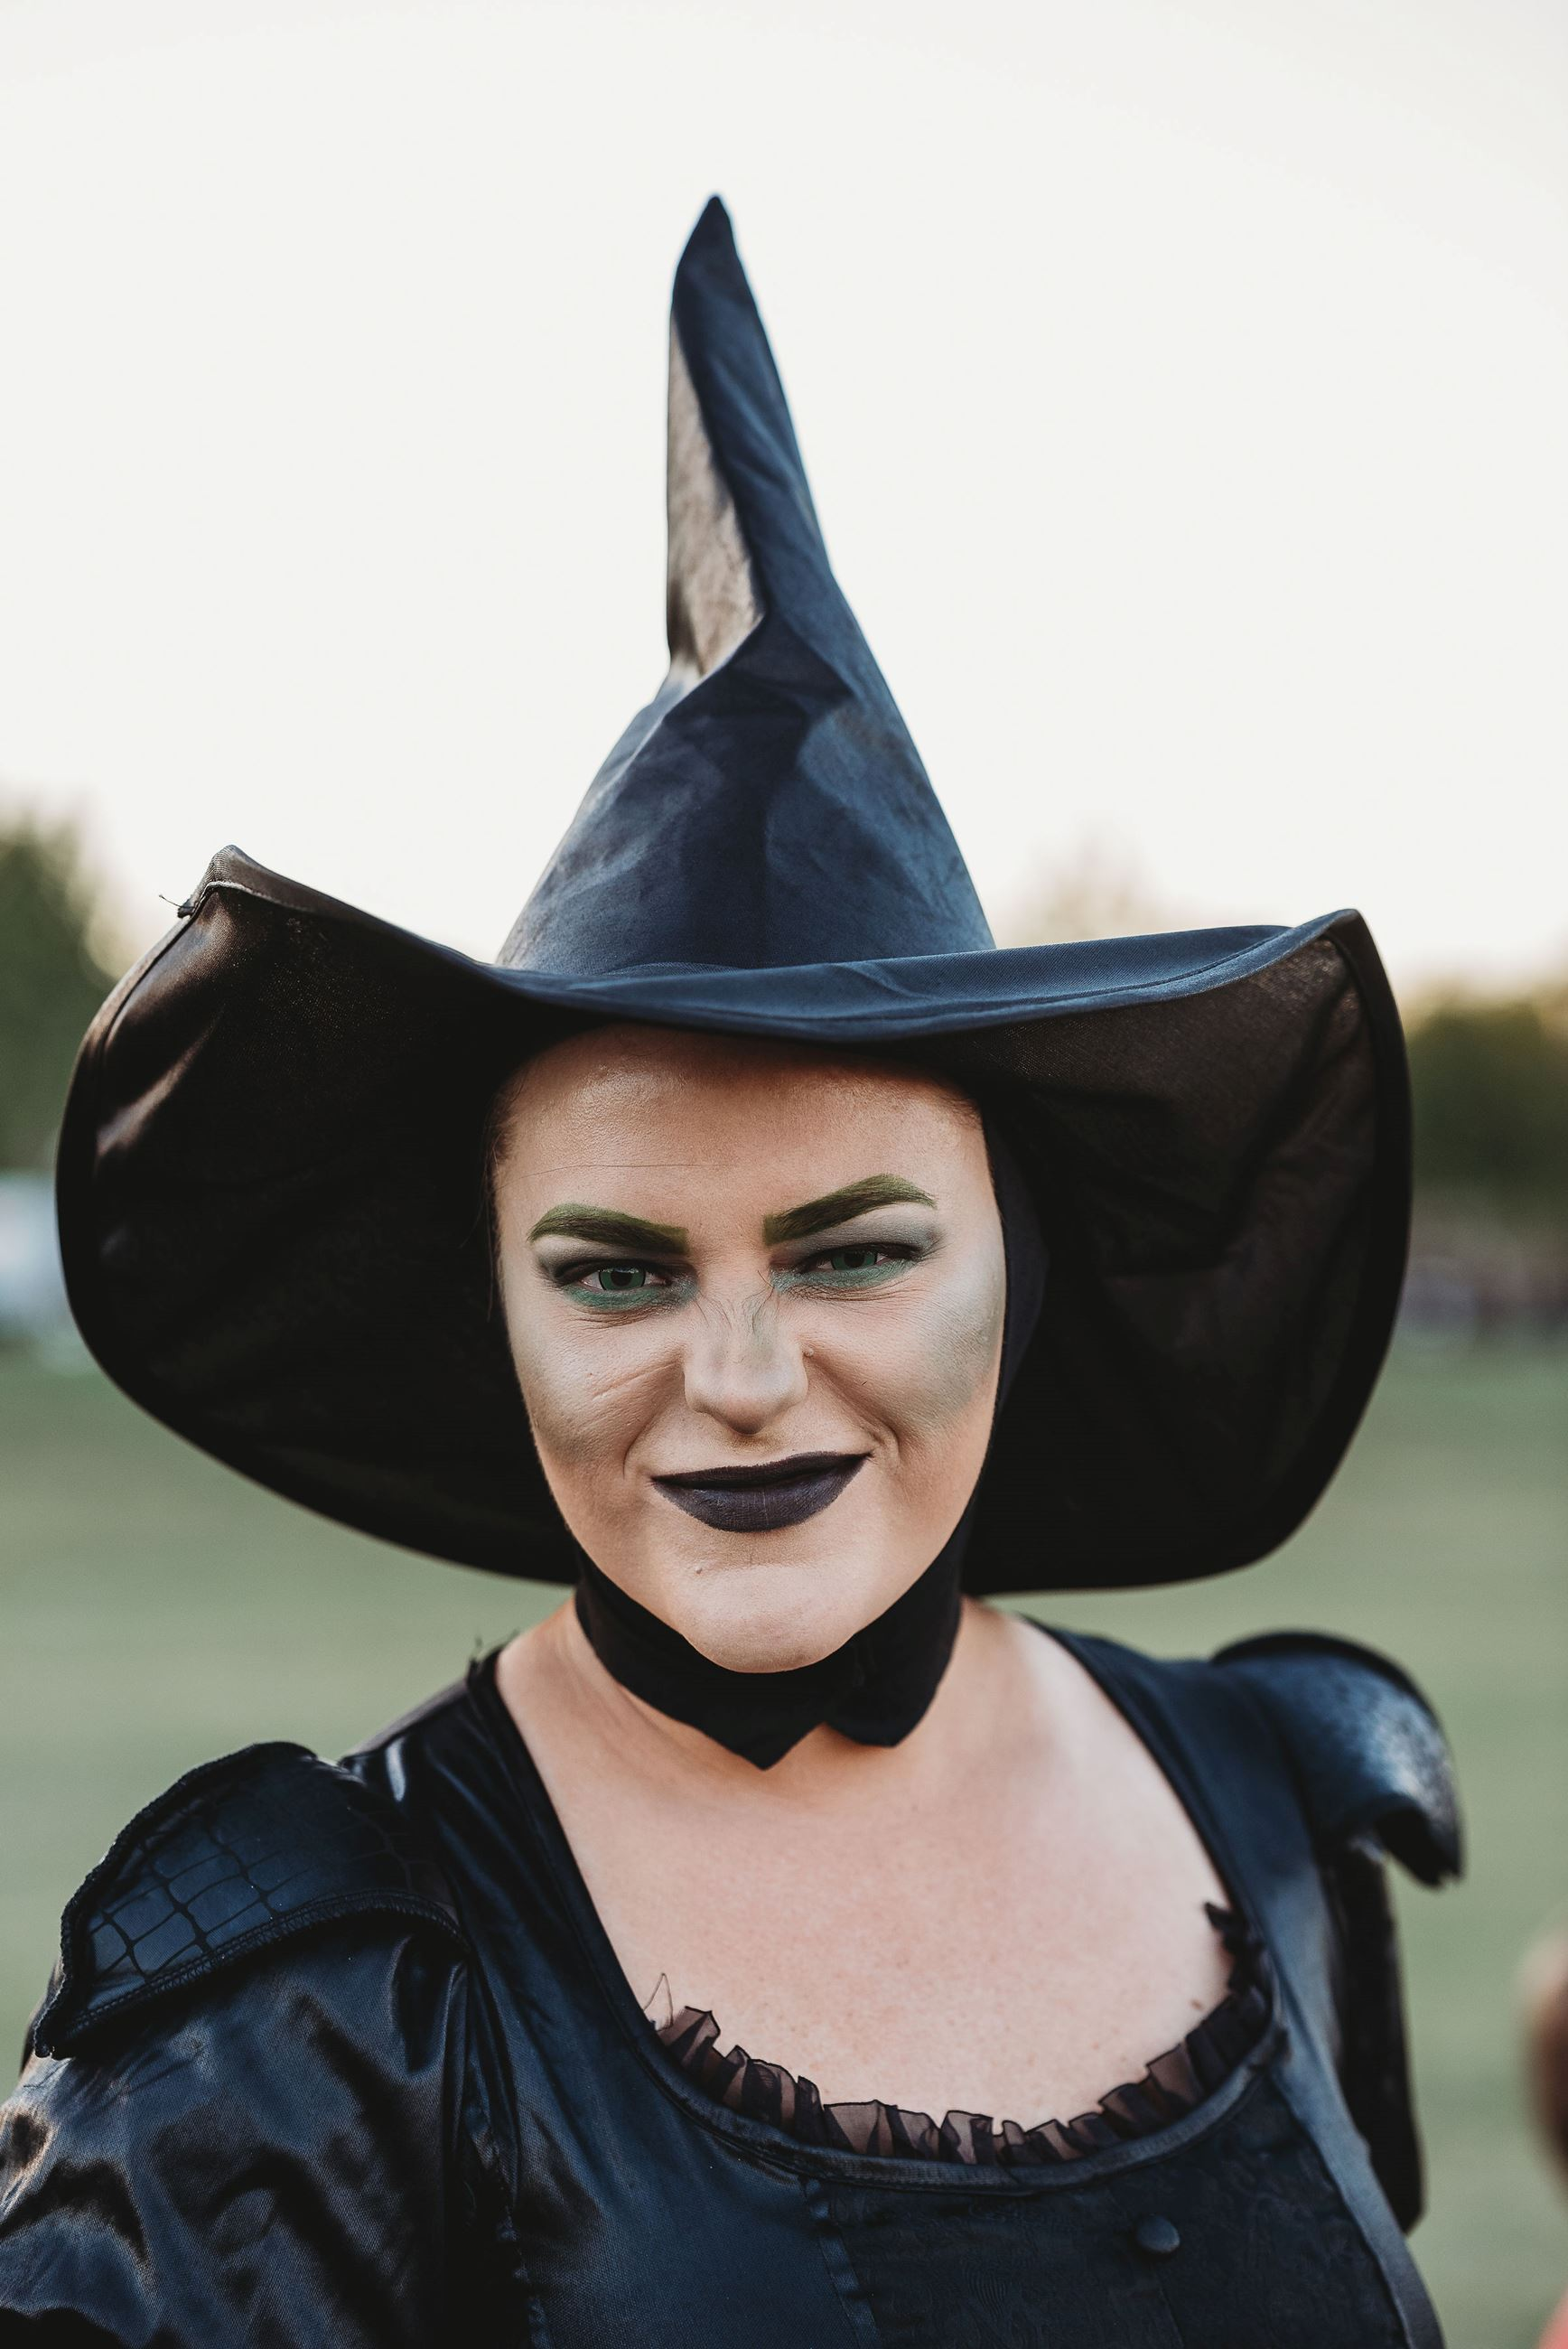 Woman Dressed as a Witch Gives a Wicked Grin at the Camera